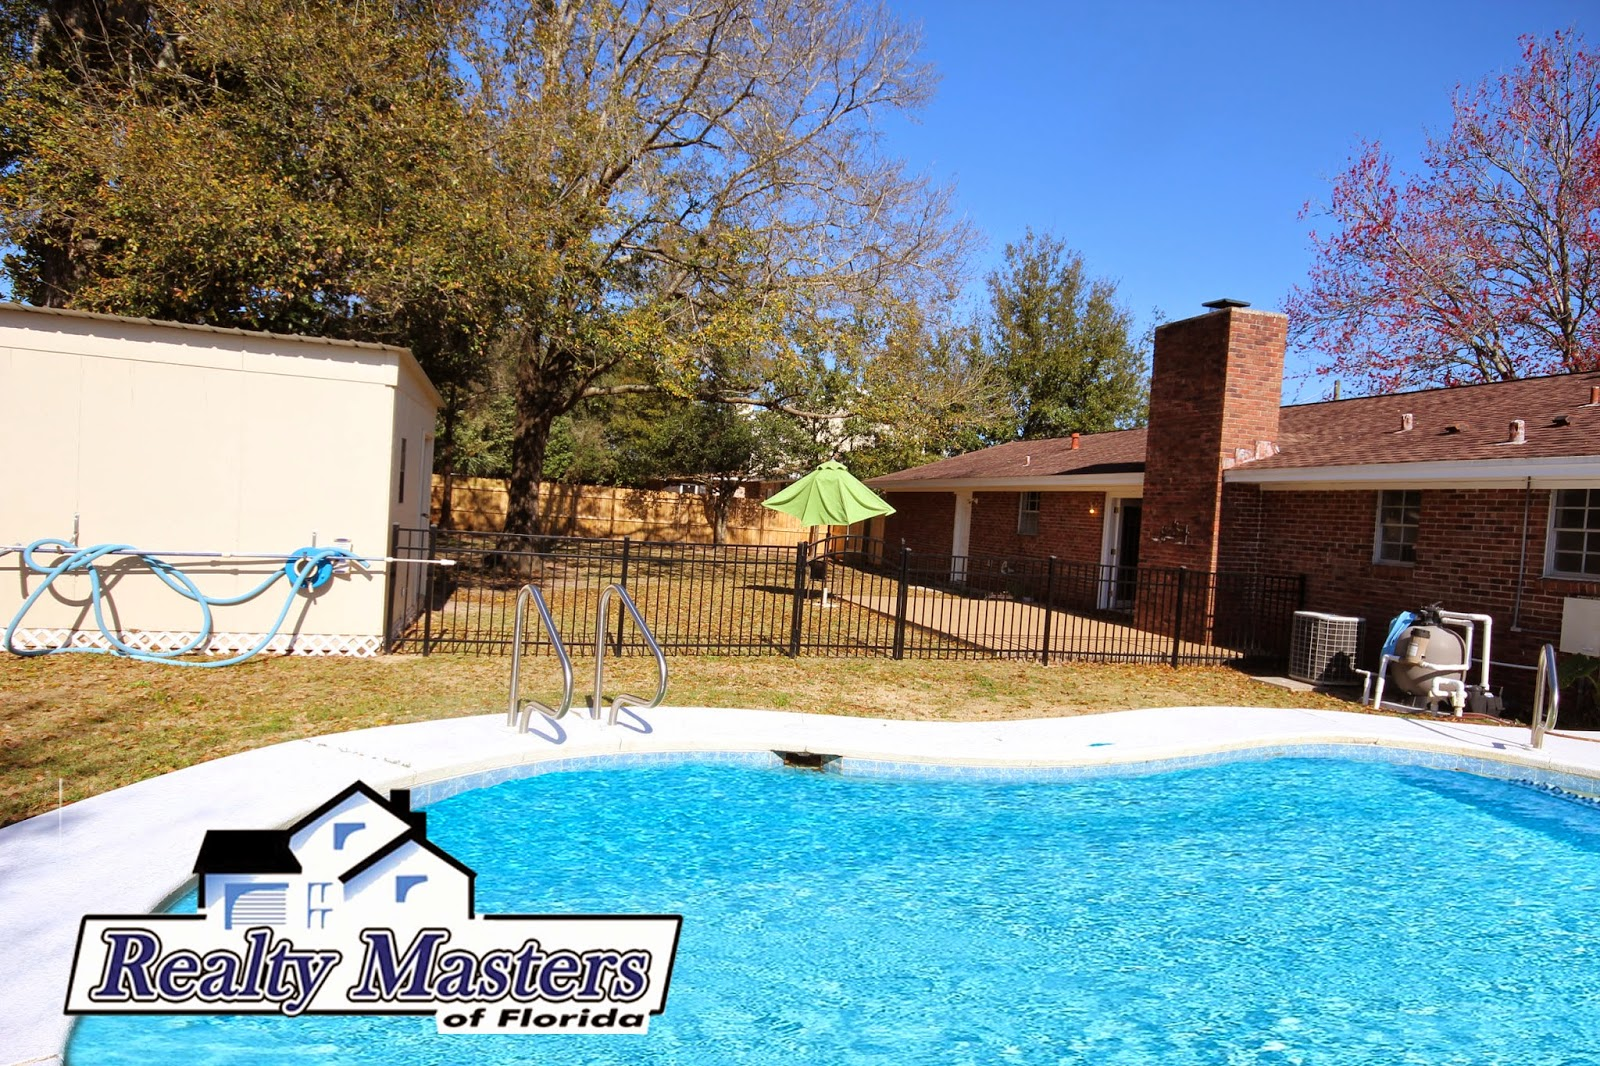 Pool homes for rent in Northeast Pensacola